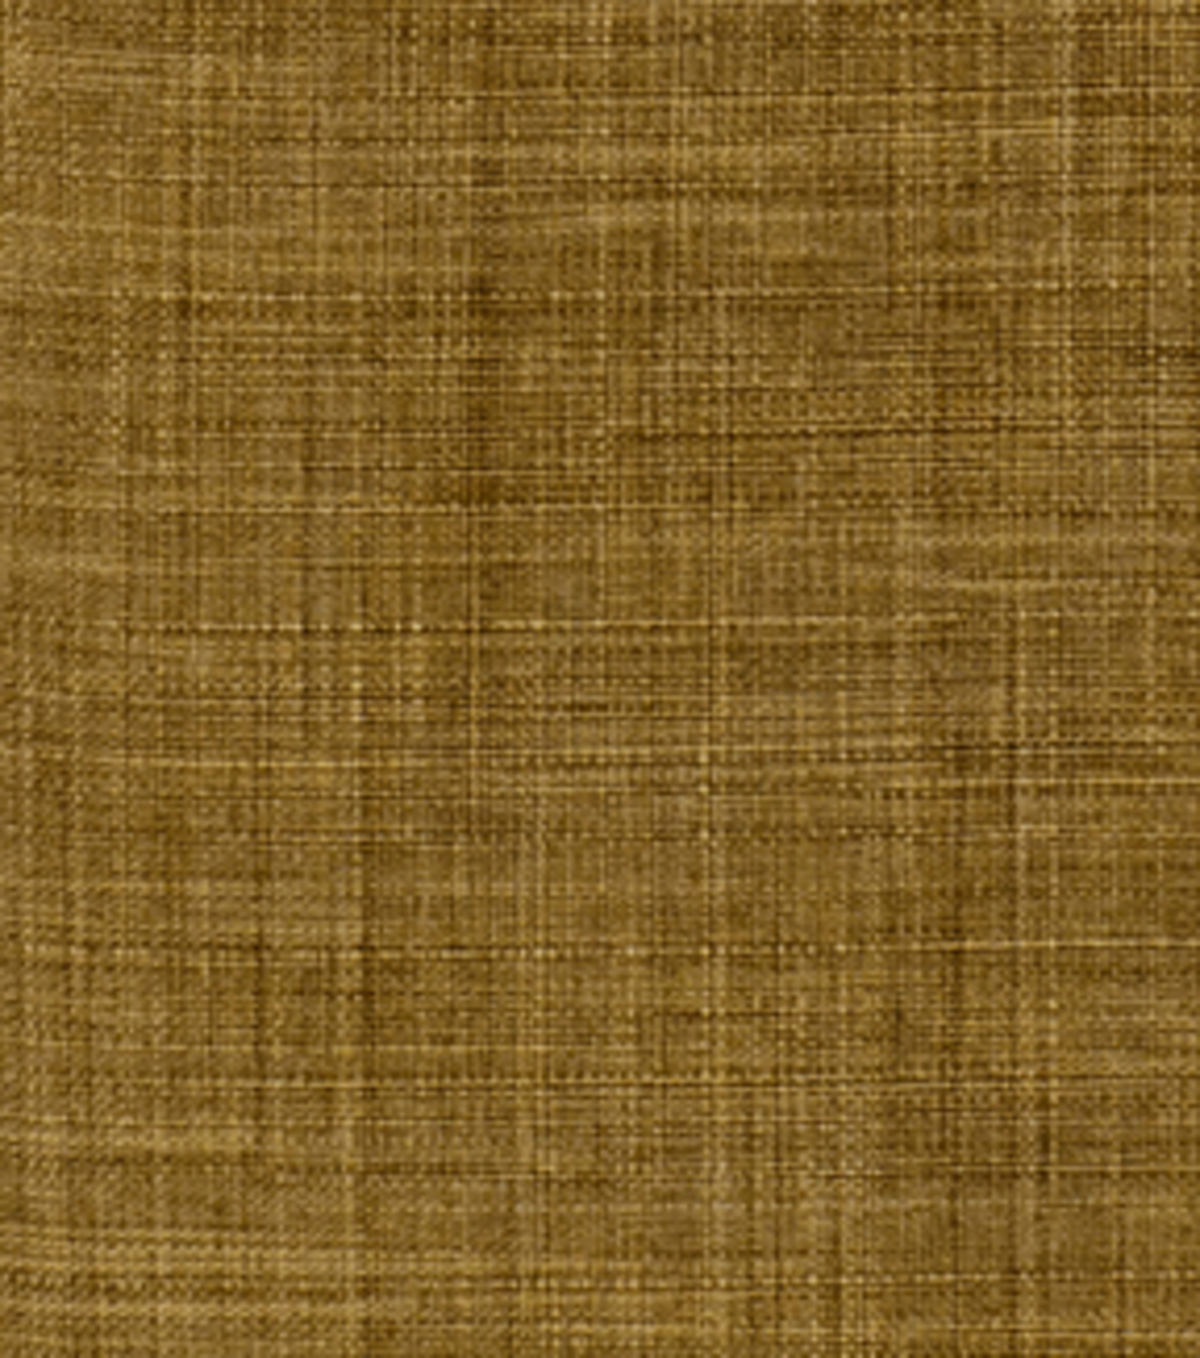 8\u0027\u0027x8\u0027\u0027 Home Decor Fabric Swatch-Solid Fabric Eaton Square Adrift Leather